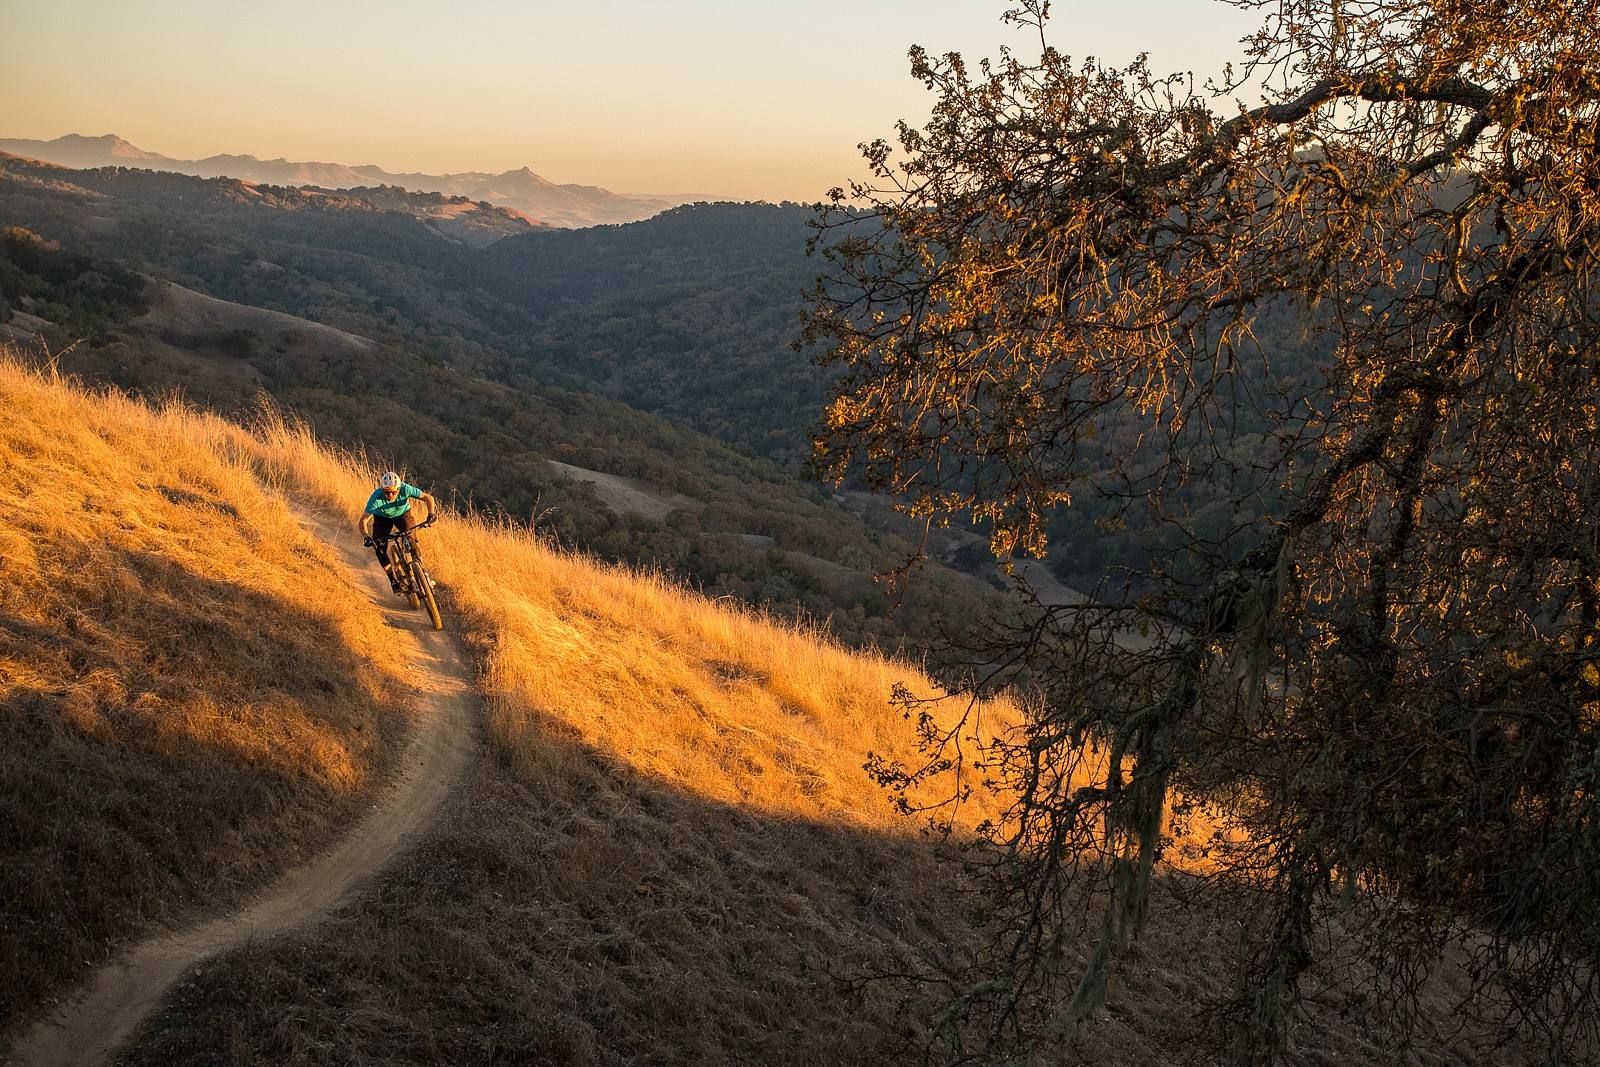 Out in the hills - danseverson photo - Mountain Biking Pictures - Vital MTB